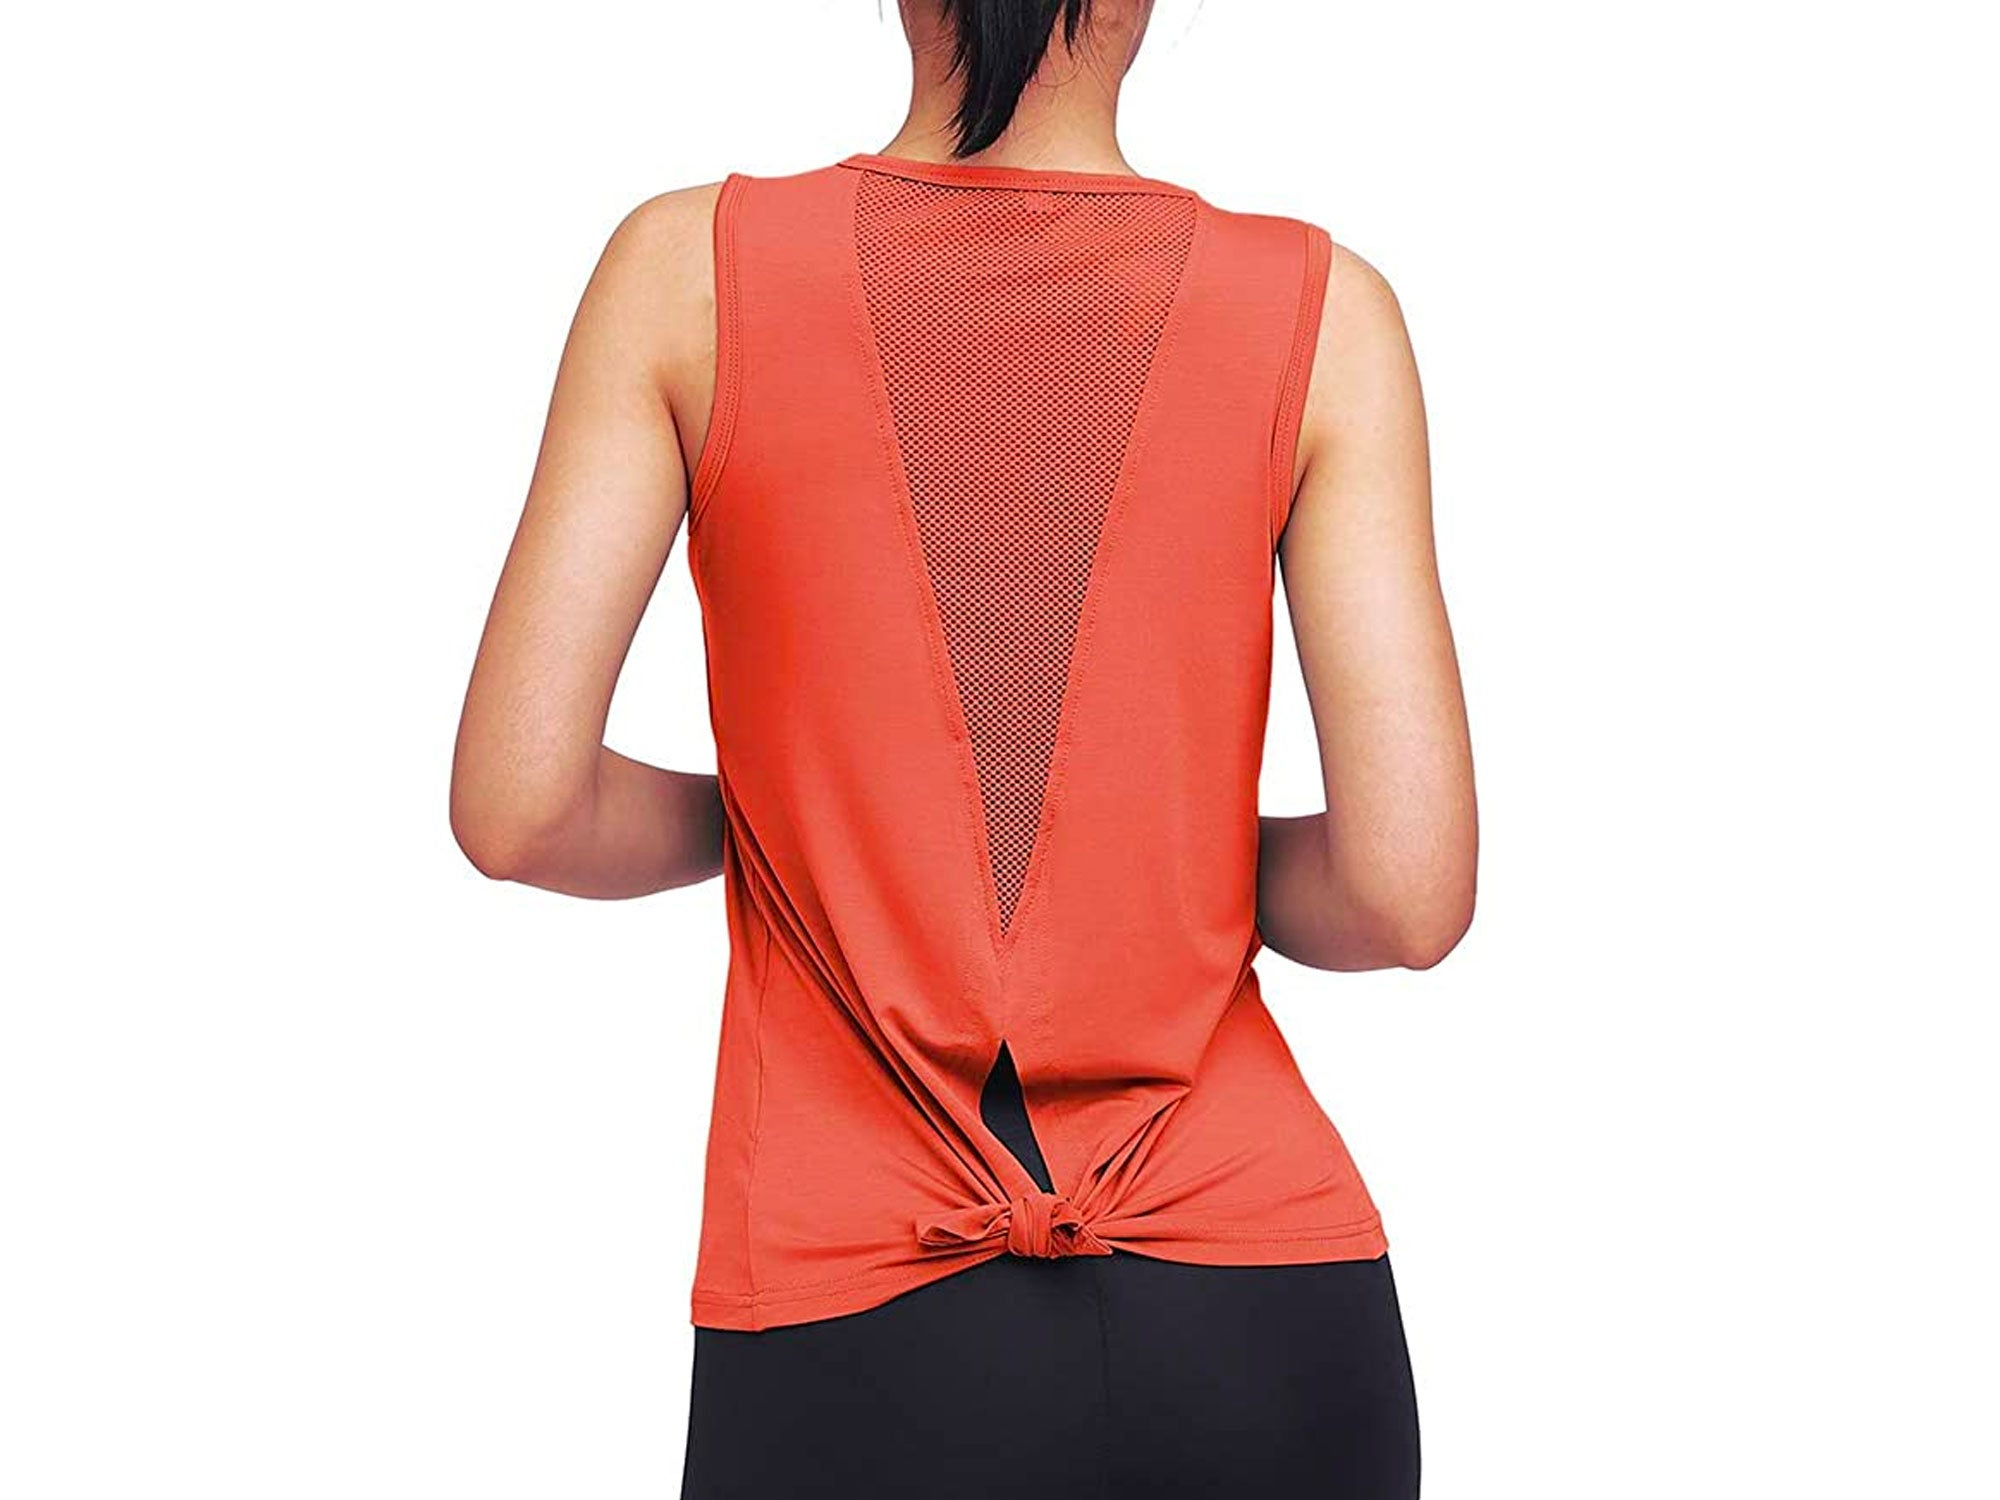 Mippo Workout Tops for Women Workout Yoga Shirts Muscle Tank Athletic Running Tank Tops